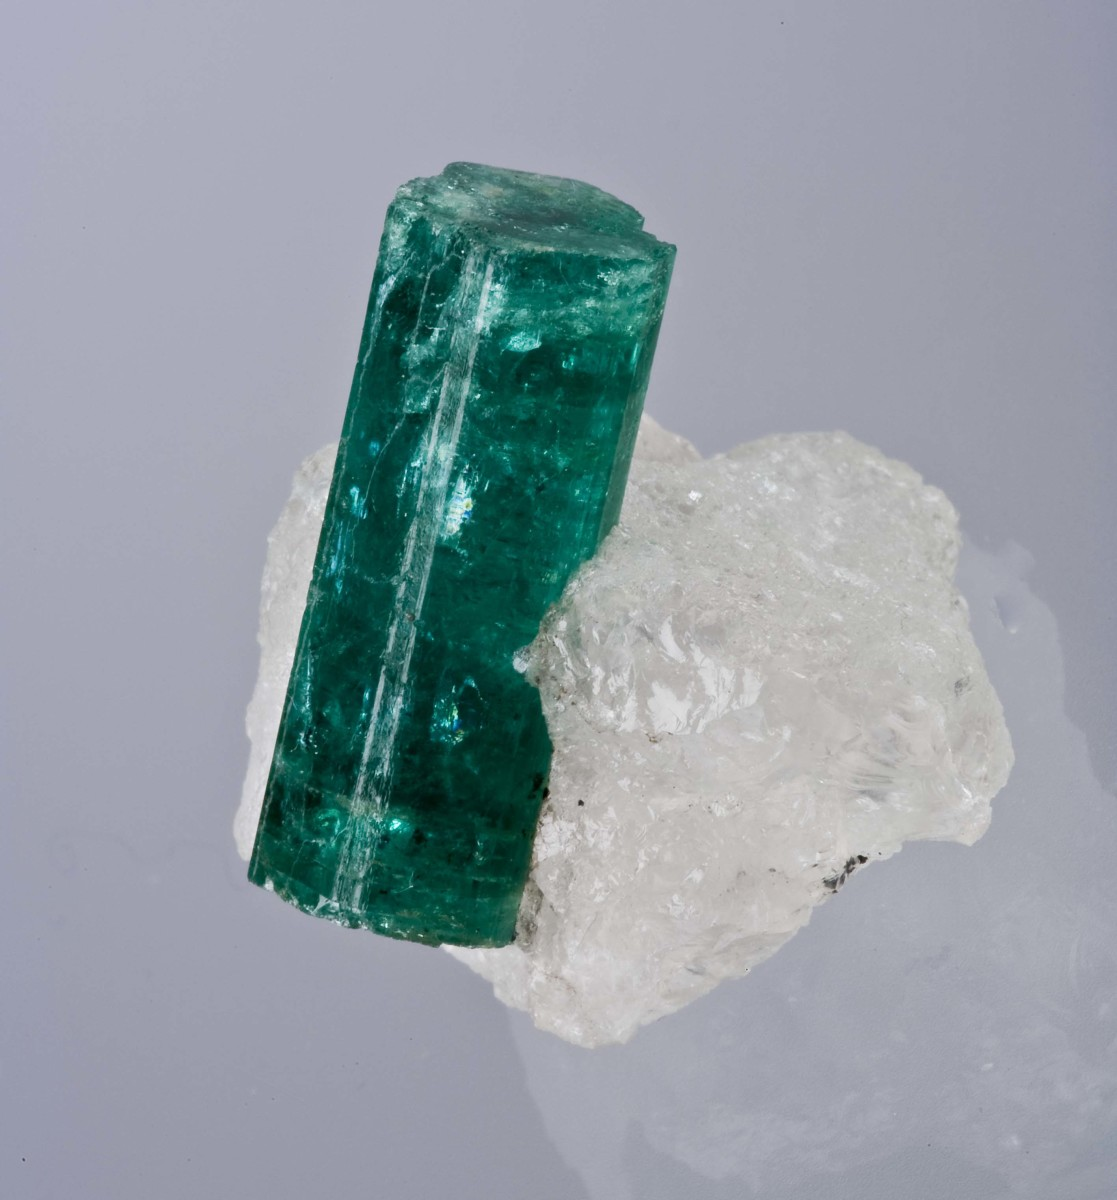 An emerald nestled into a knoll of quartz, as discovered in a Zambian mine.